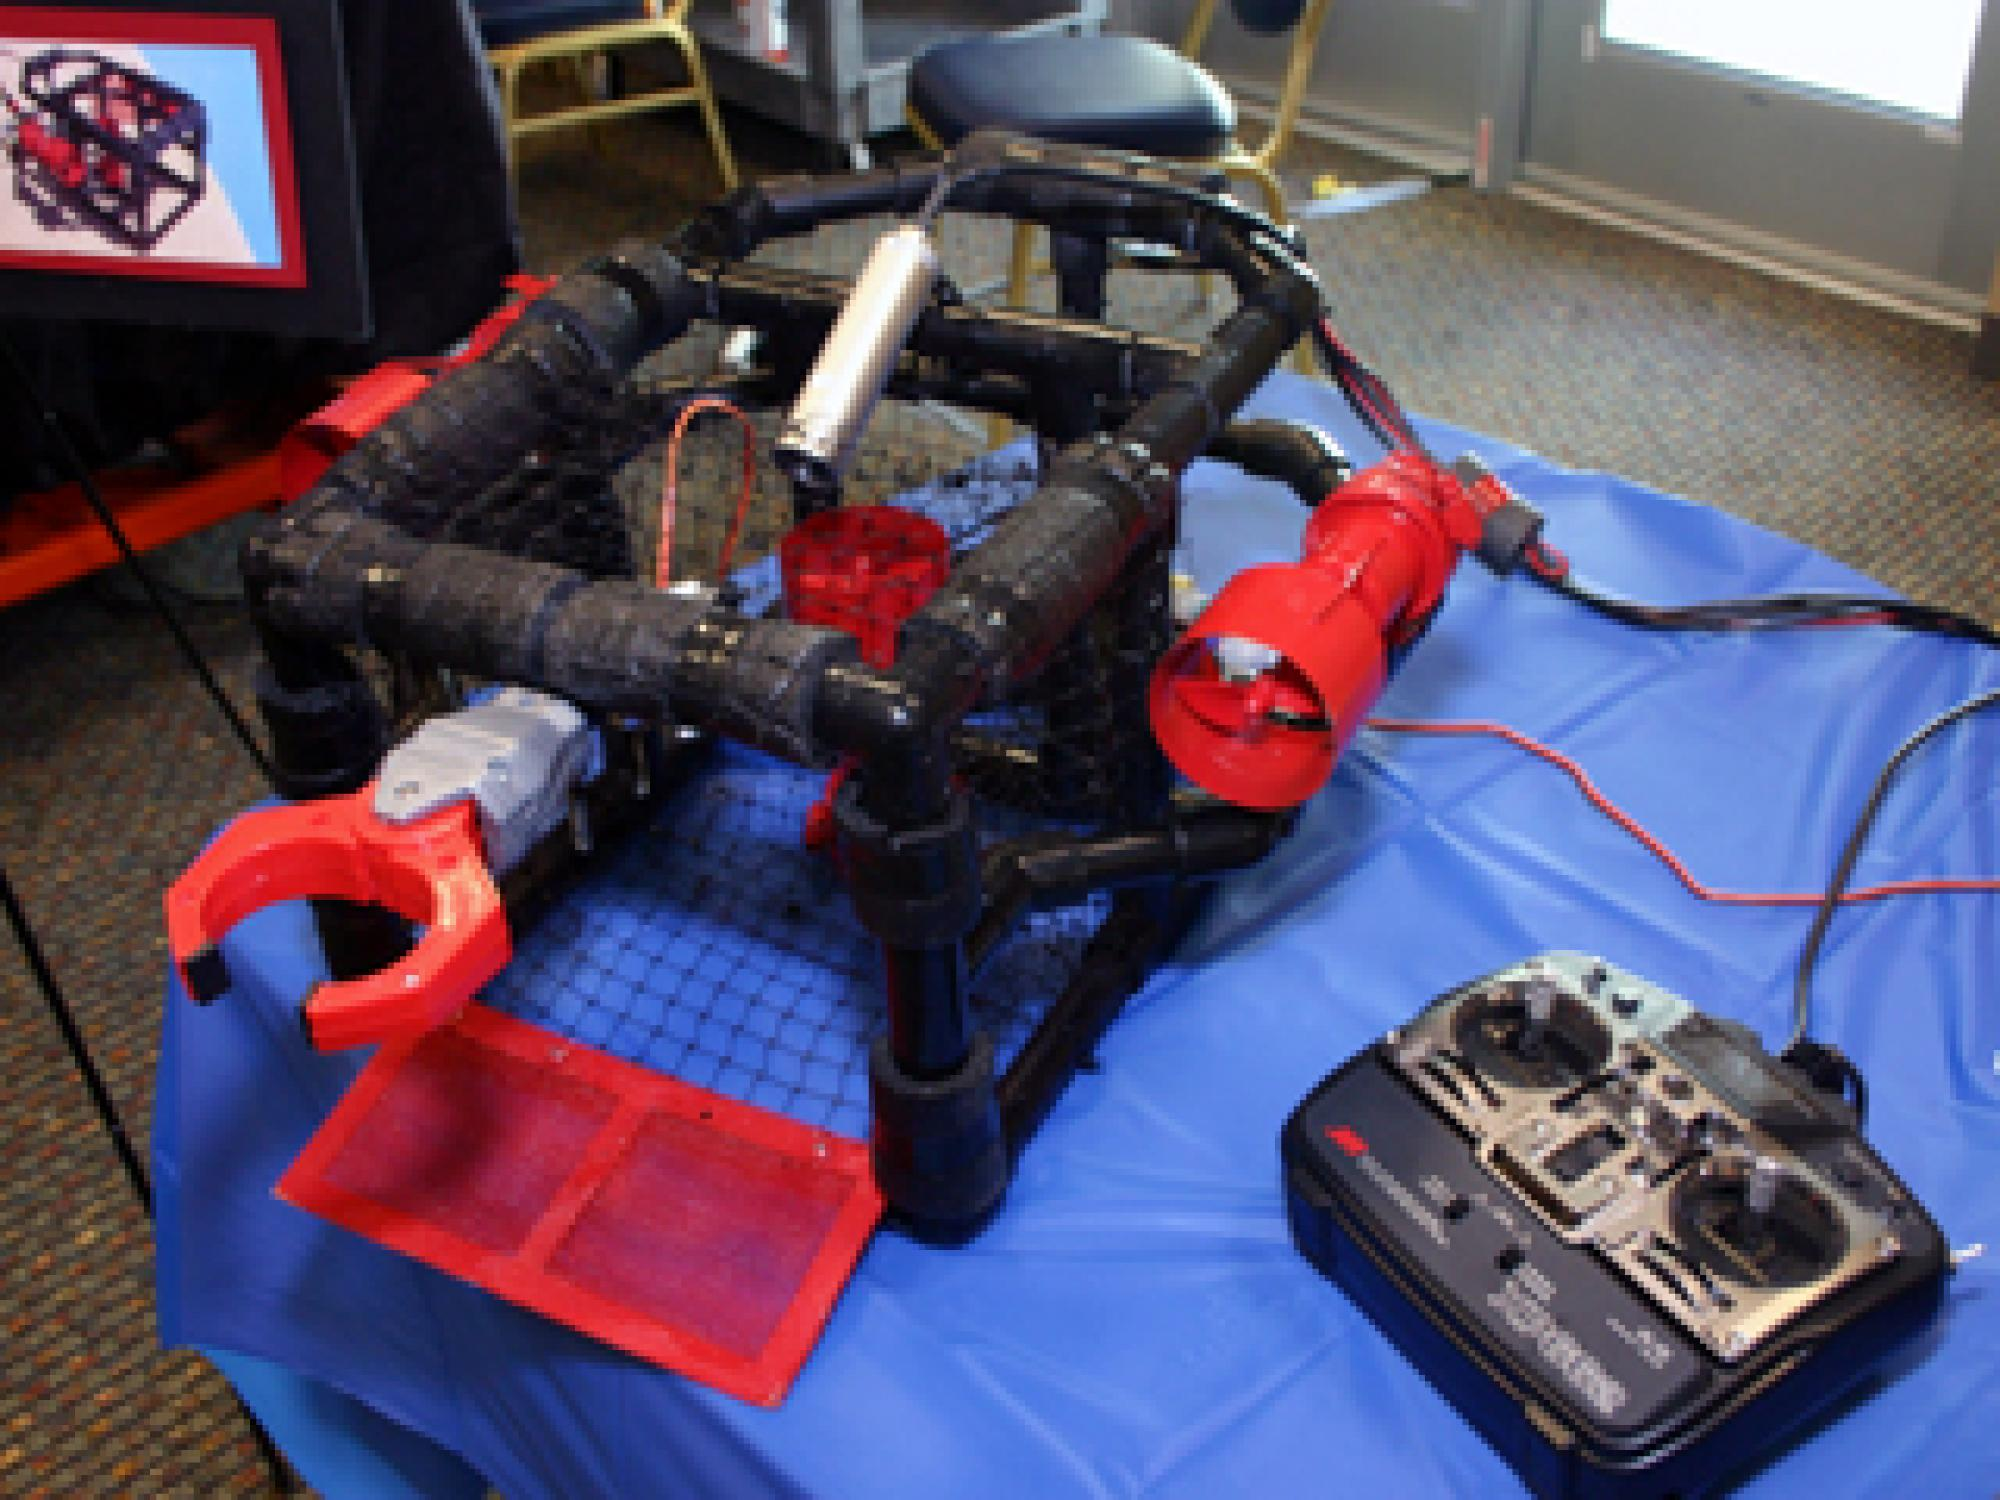 The robot submarine has two side-mounted motors that make it go forward and reverse. The motors run in opposite directions to make it turn. Since the sub was built to have neutral buoyancy, the vertical motor controls its depth. The robotic arm is used fo